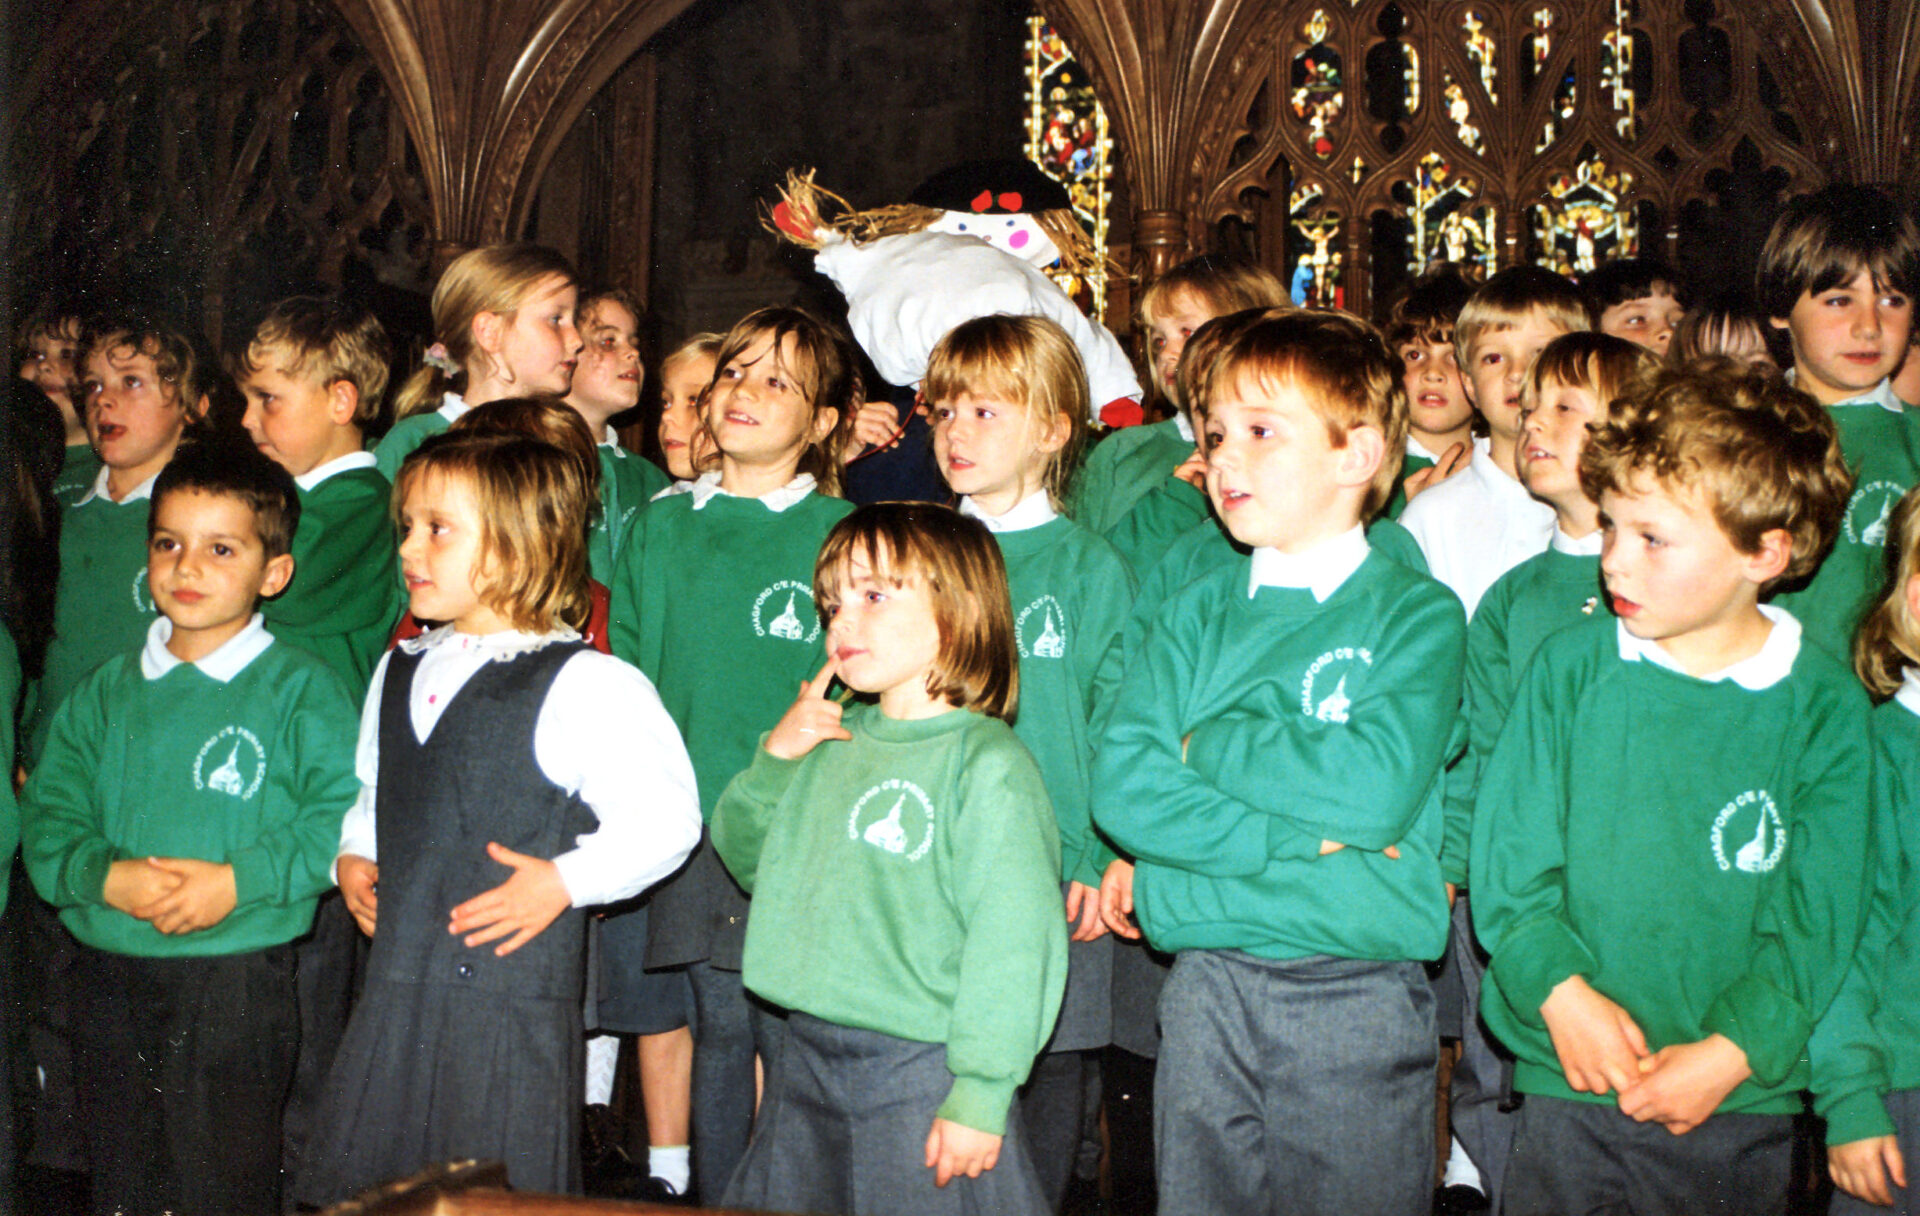 Chagford Church Service for the Primary School, for Harvest Festival, judging by the scarecrow in the background.